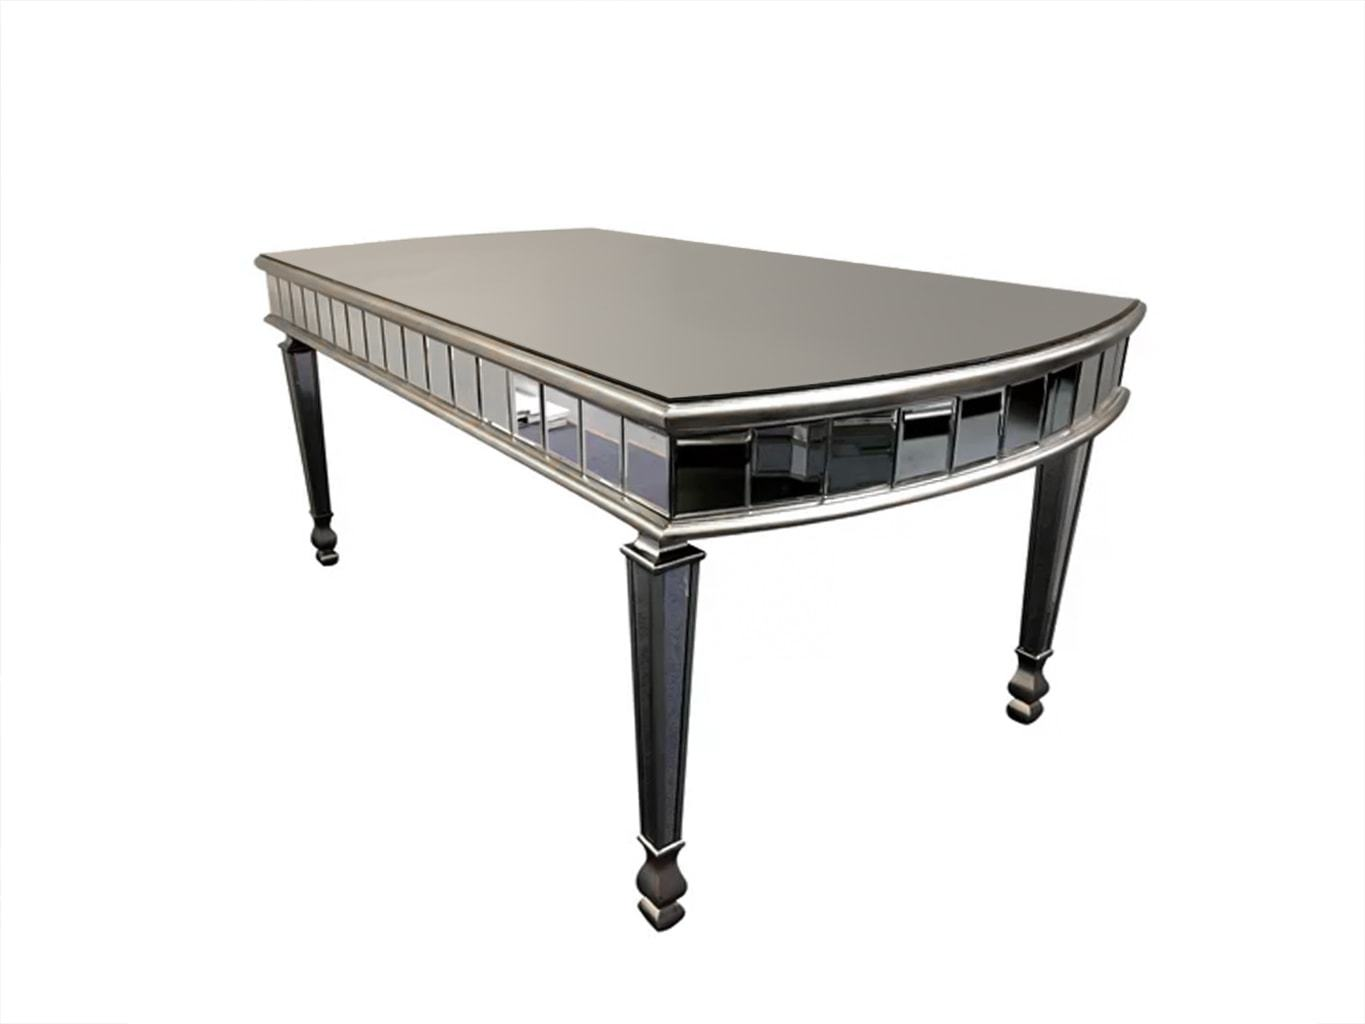 Mirrored Dining Tables Shop Interiors Invogue